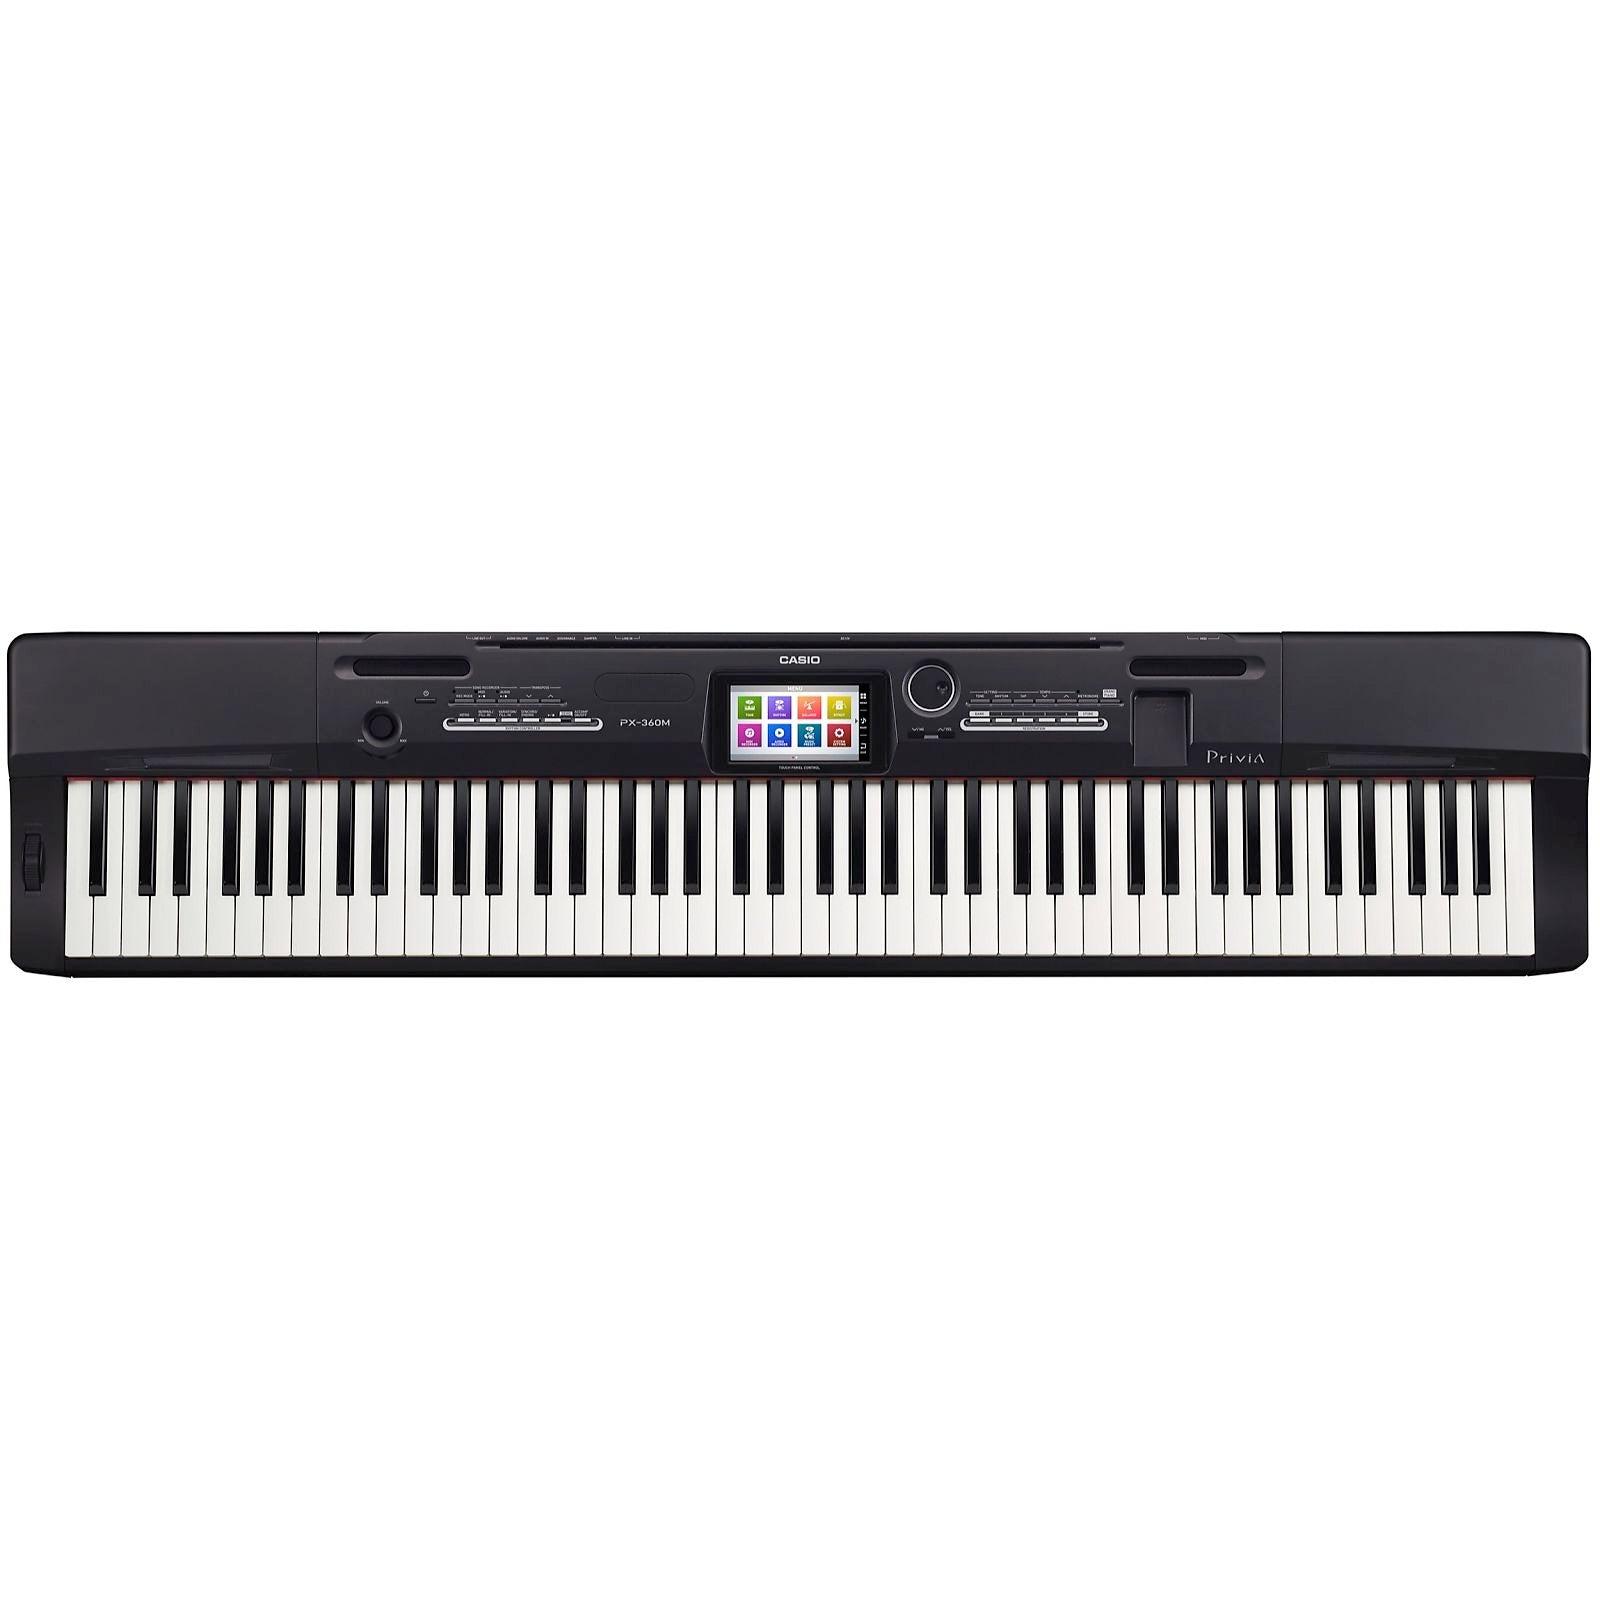 Casio PX-360 Privia Digital Piano, Black